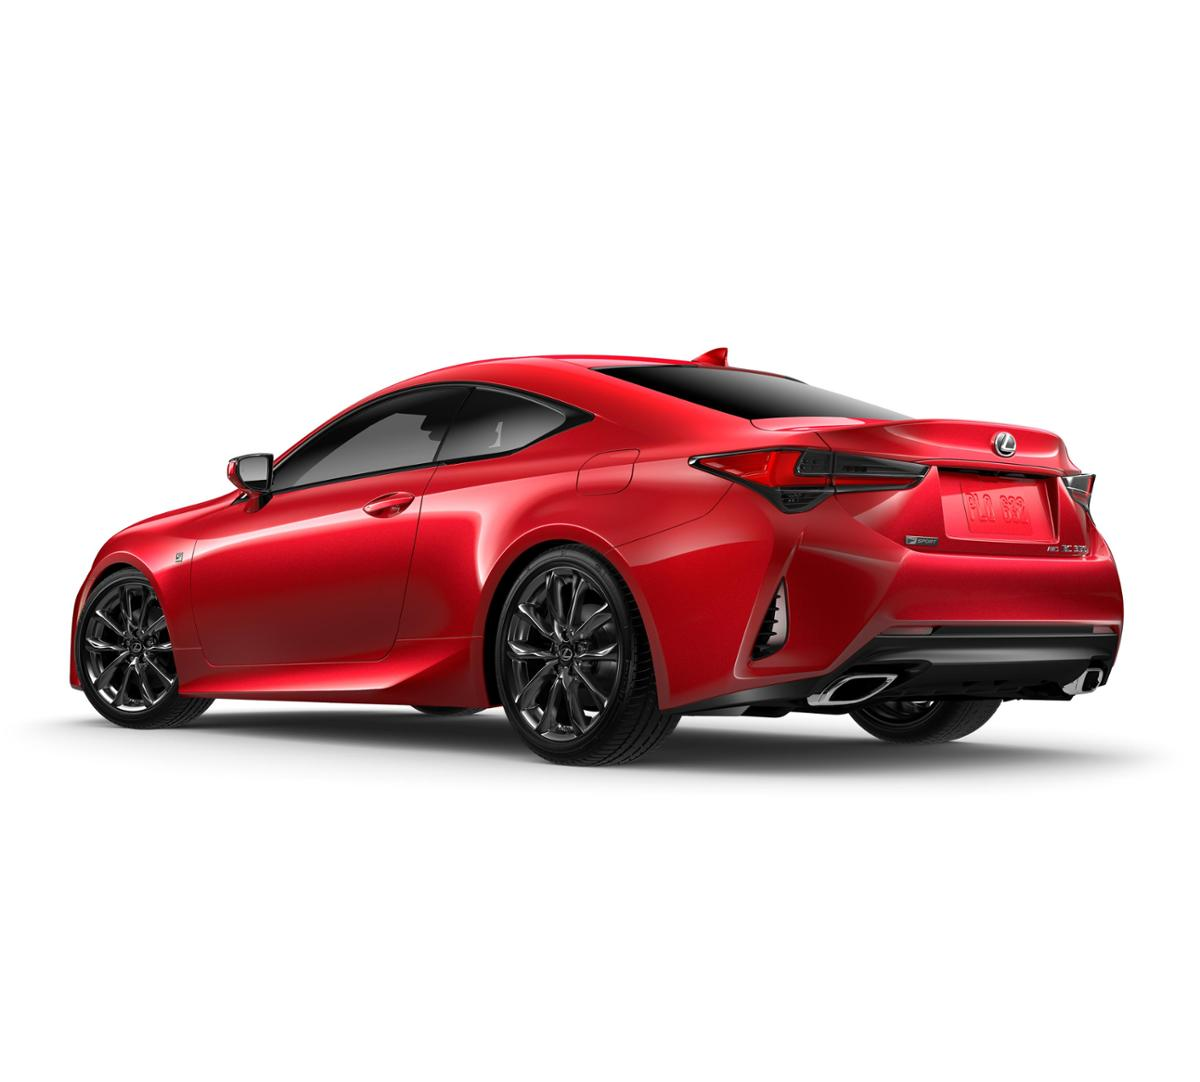 Lexus Rc 350 F Sport Price: Towson Infrared 2019 Lexus RC 350: New Car For Sale -Y22735